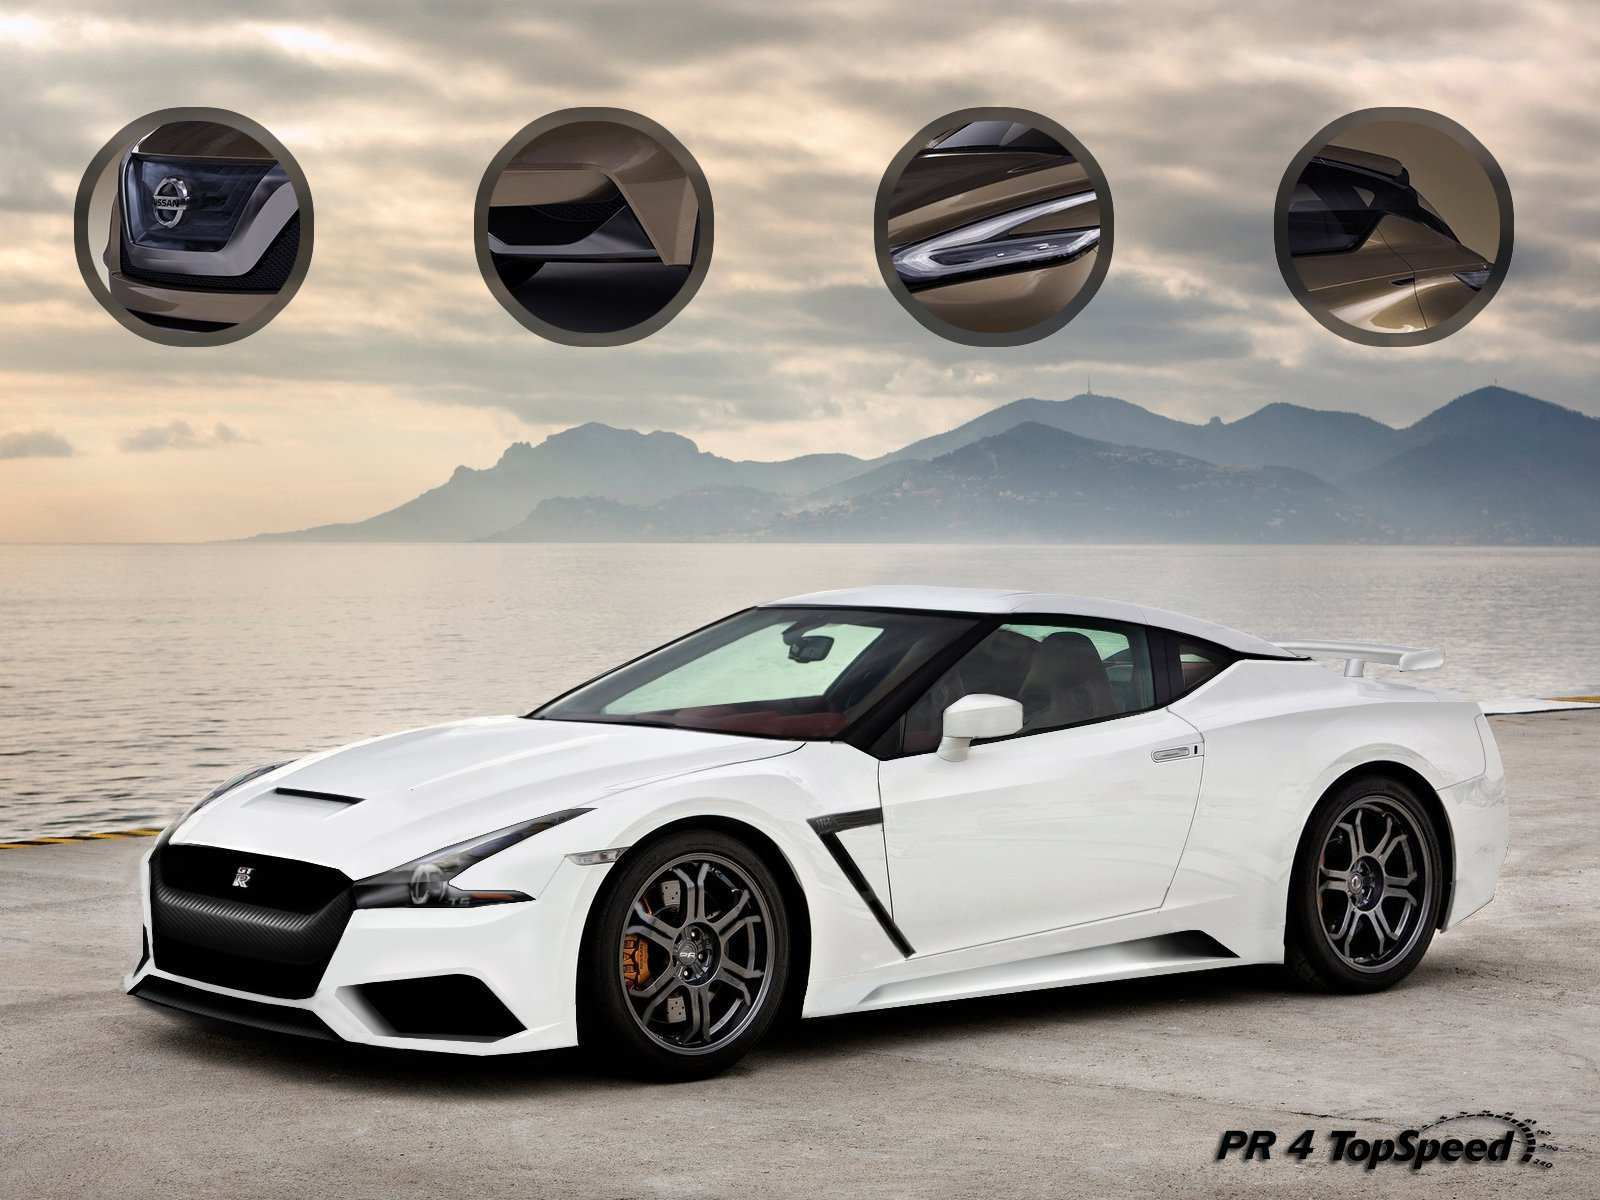 45 All New 2020 Nissan Gtr Nismo Hybrid Redesign and Concept for 2020 Nissan Gtr Nismo Hybrid